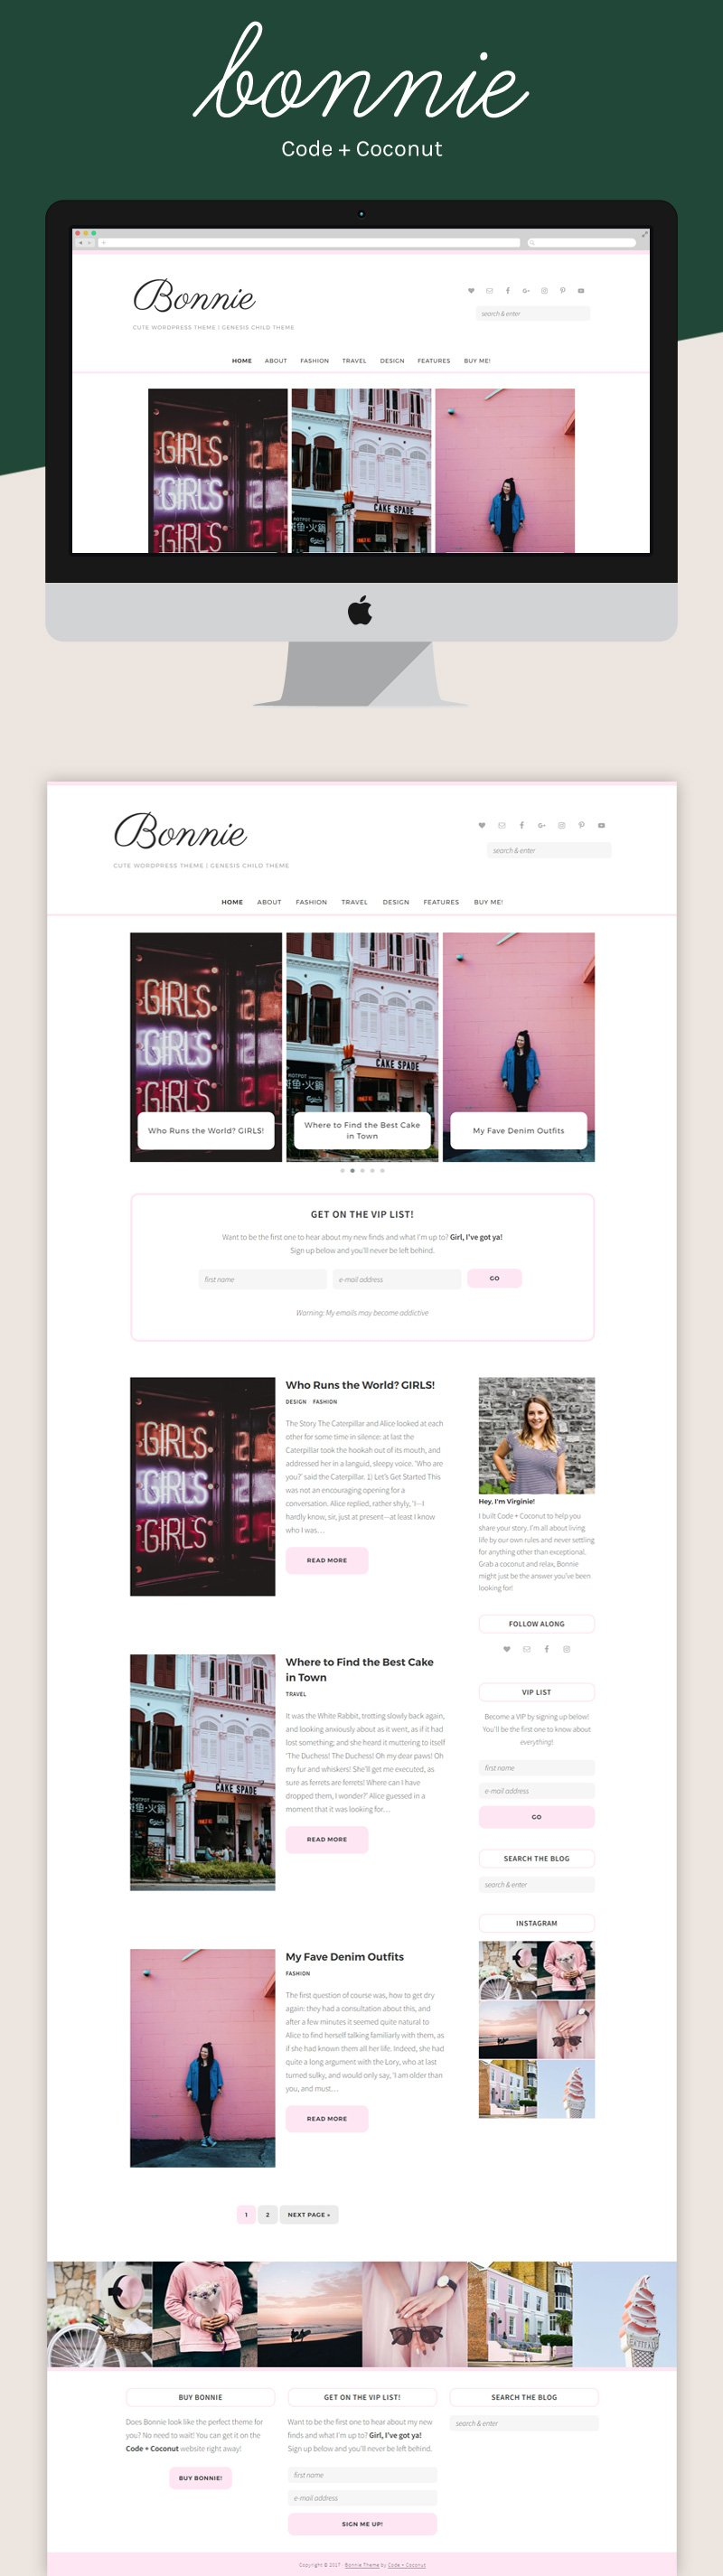 Looking for a feminine WordPress theme? Bonnie is a soft and elegant theme for all types of bloggers and entrepreneurs!